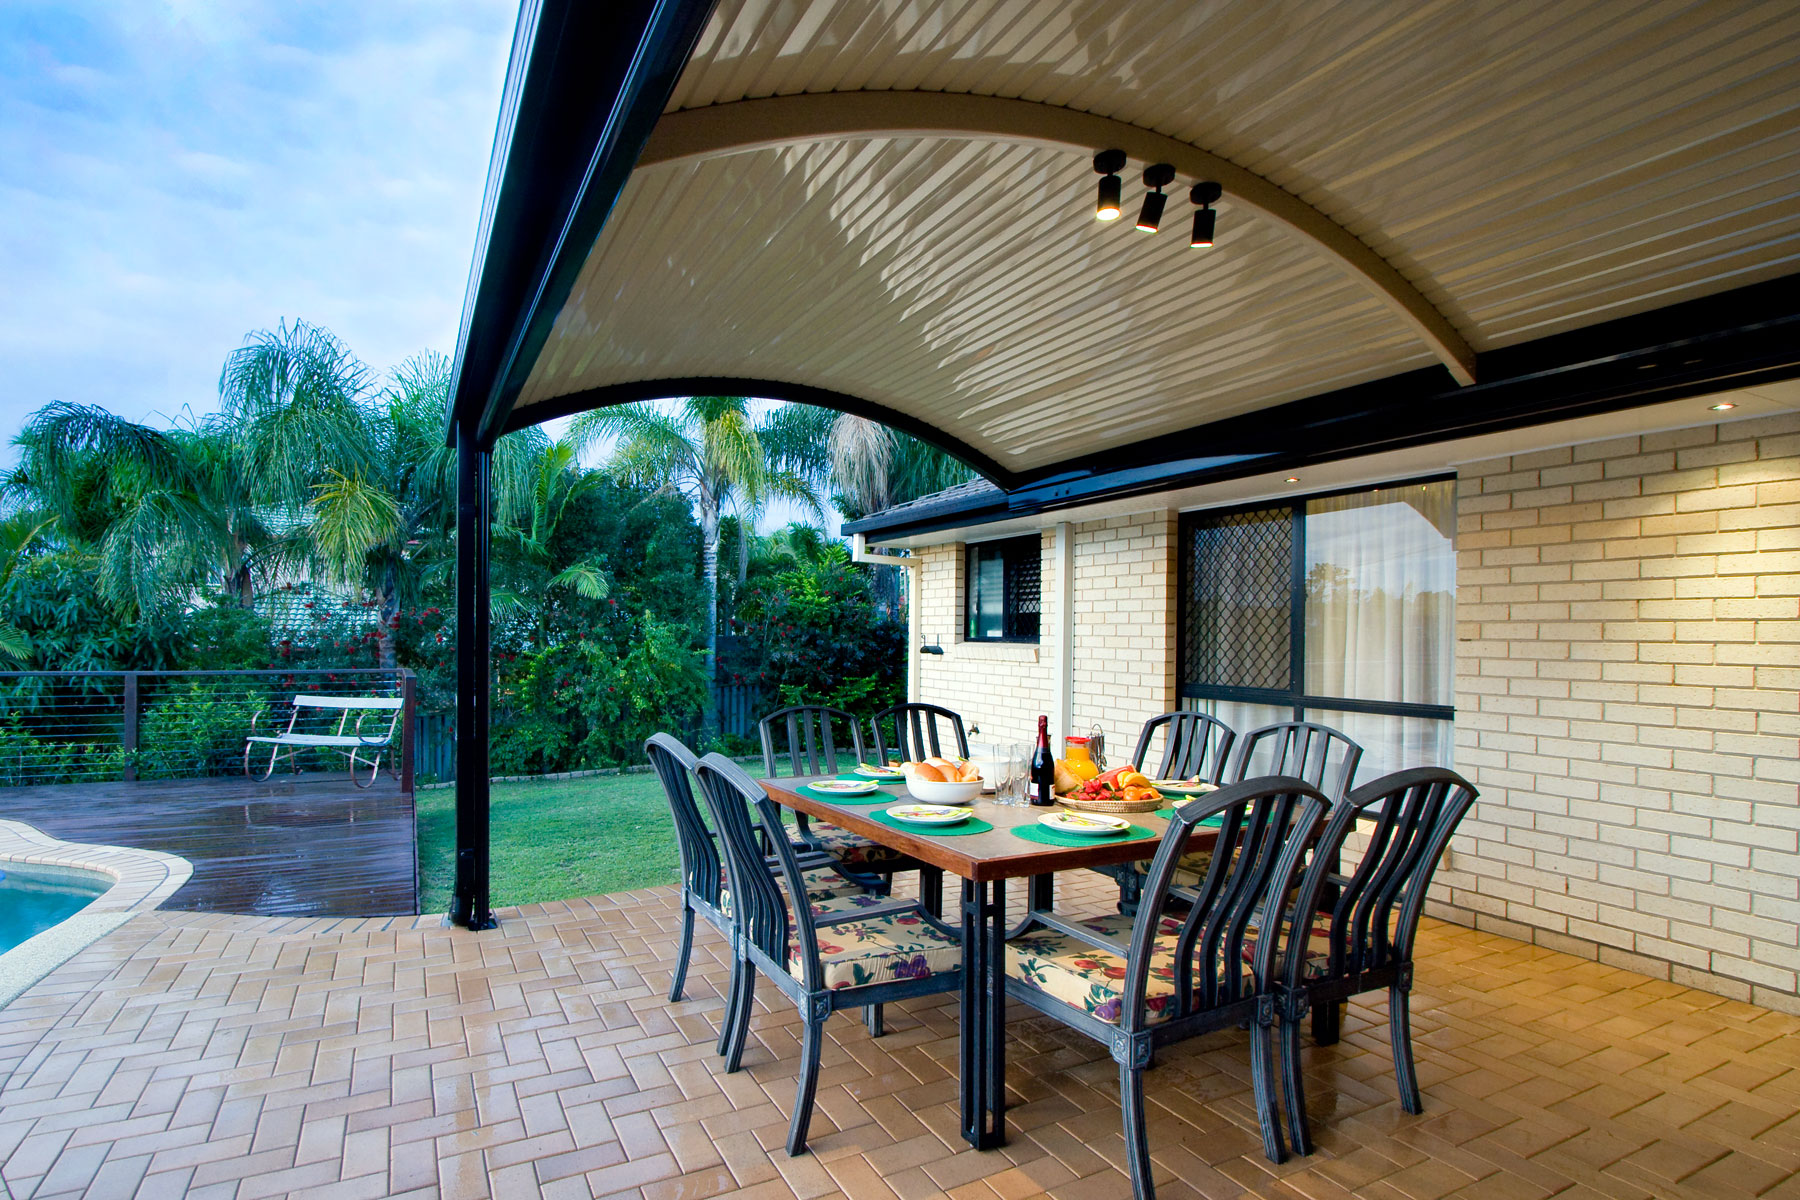 Patio with curved roofs - Stratco Outback Curved Roof Patio on Porch Backyard Ideas id=81458